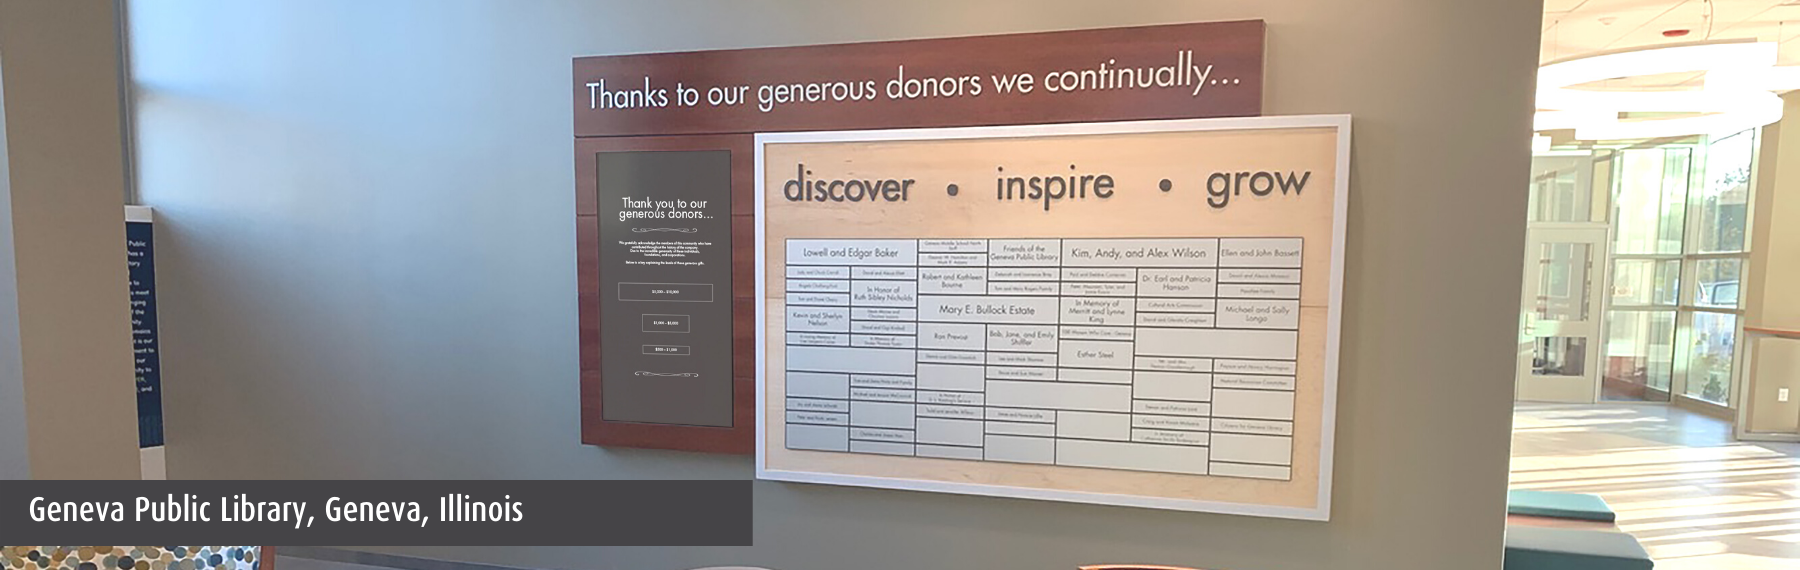 GenevaLibrary.Donor.FavoriteDonorRecognition.2020.png